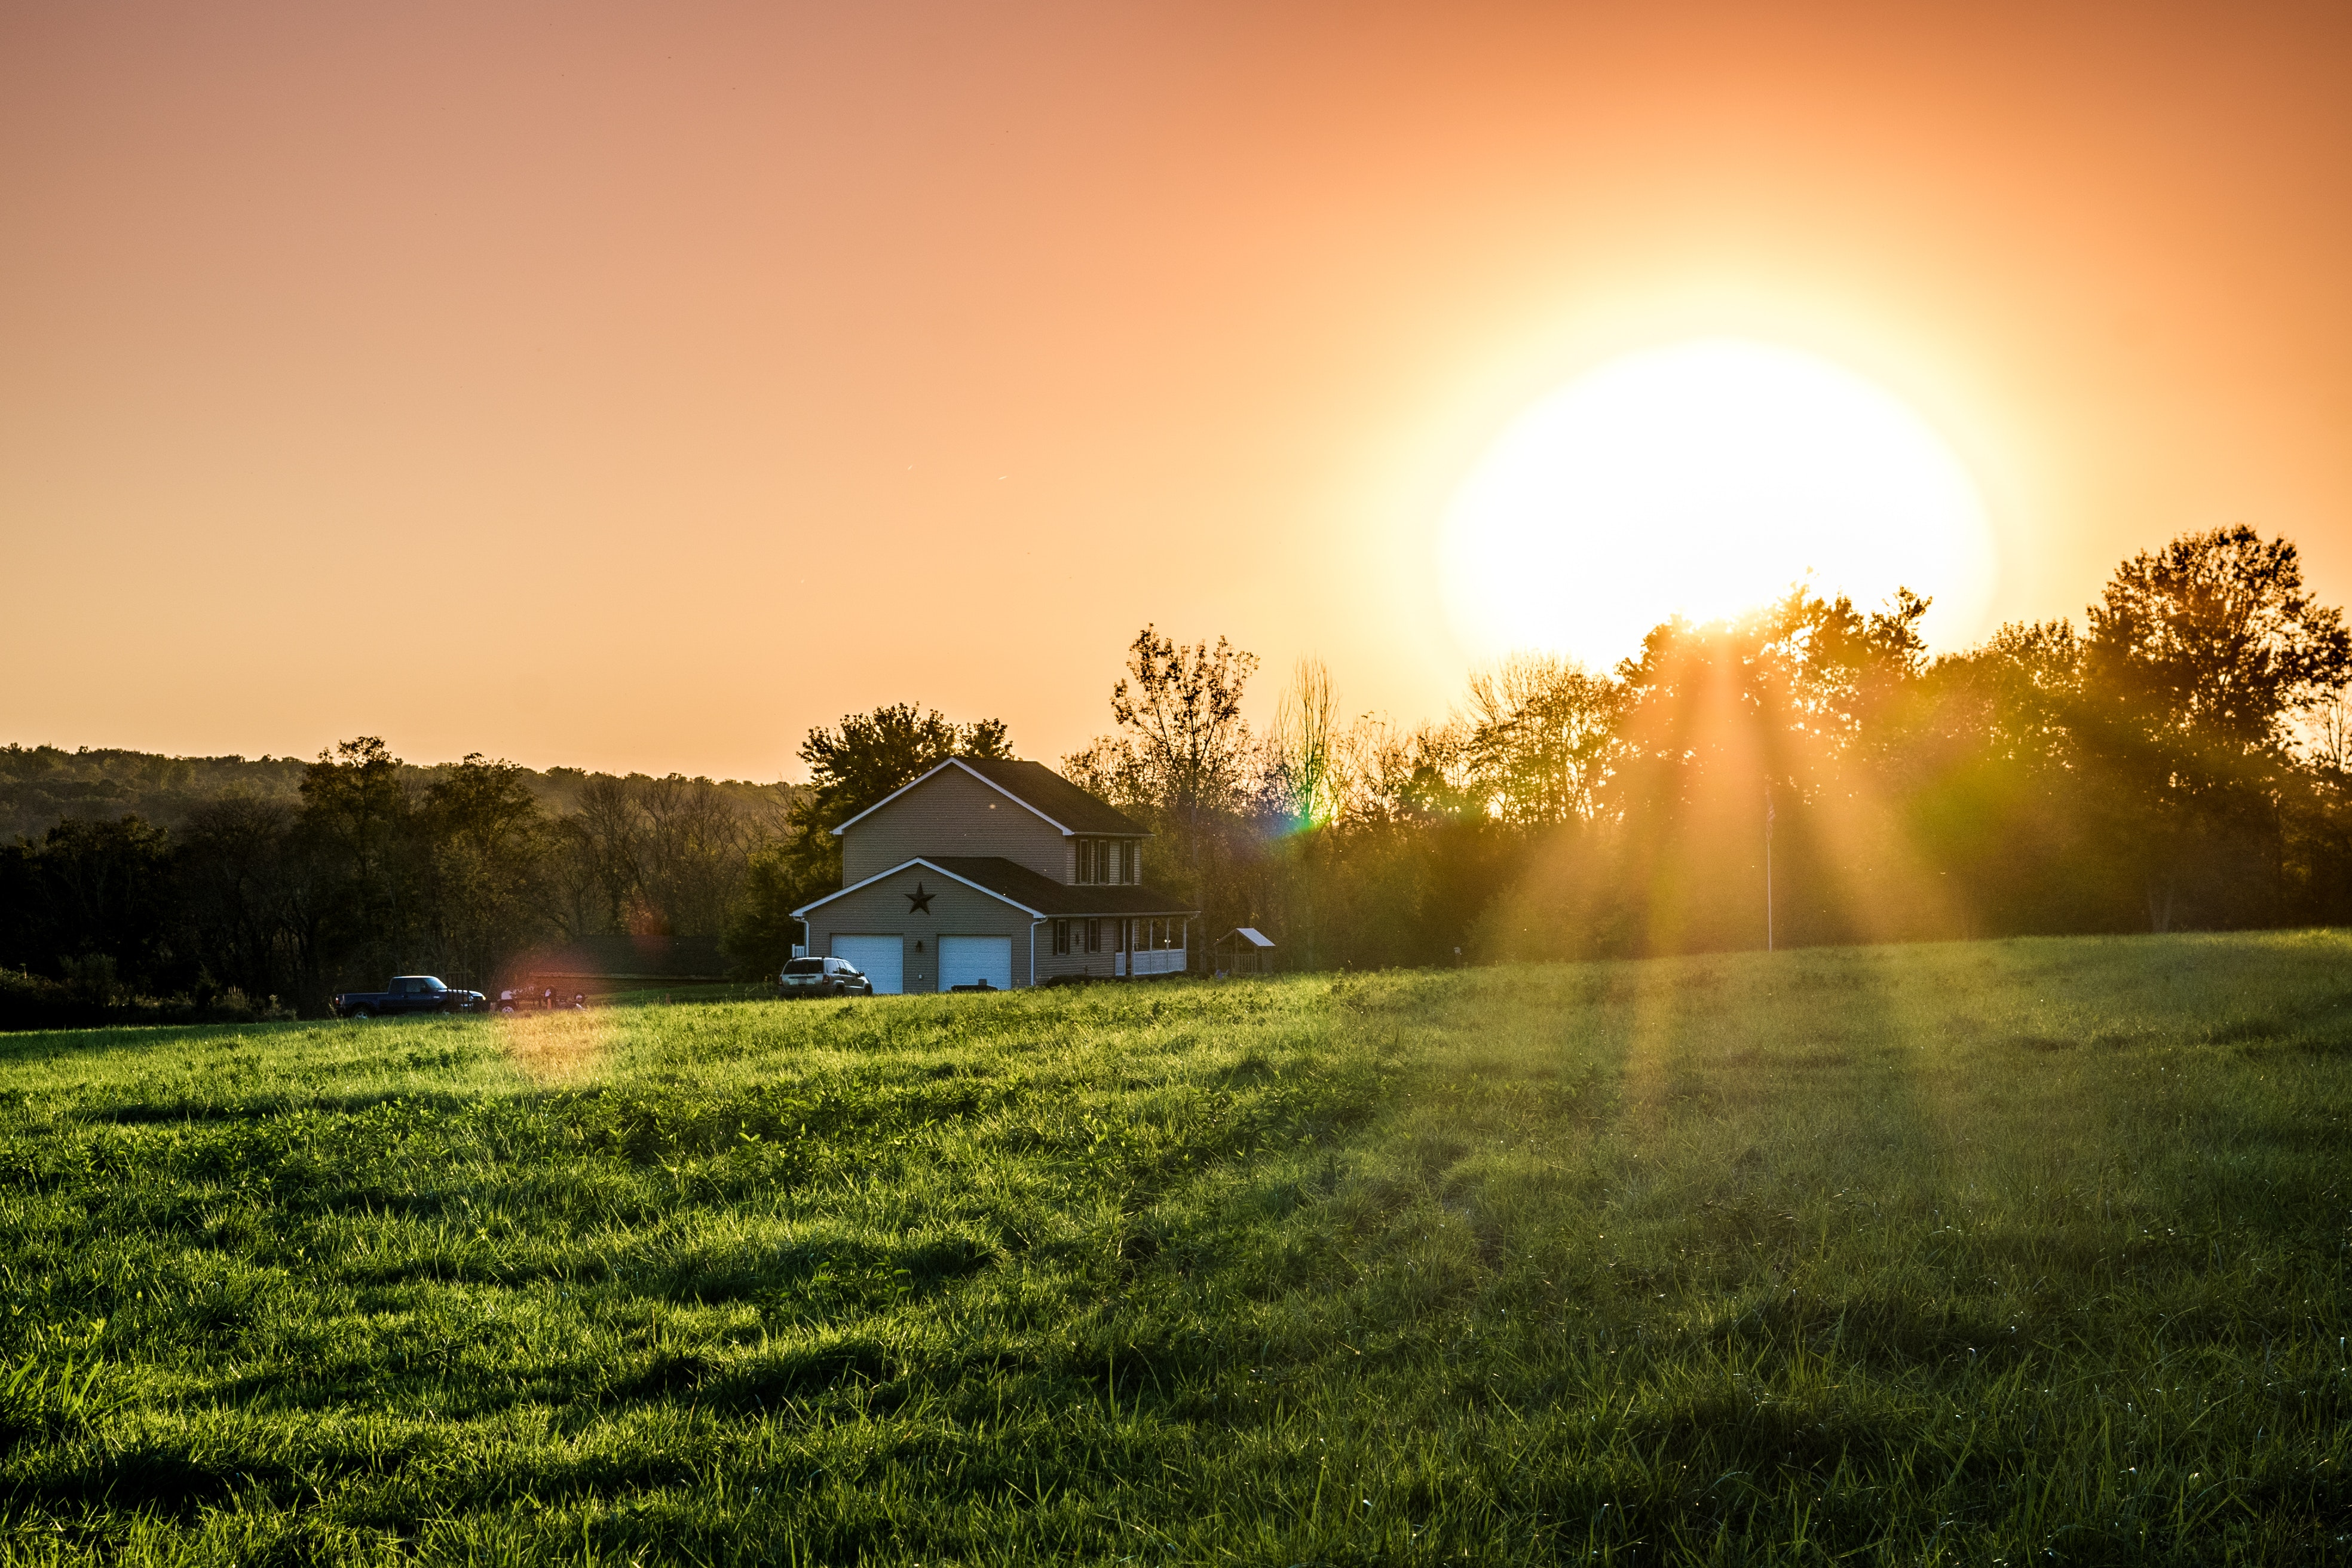 A photo of a house with the sun rising behind it.